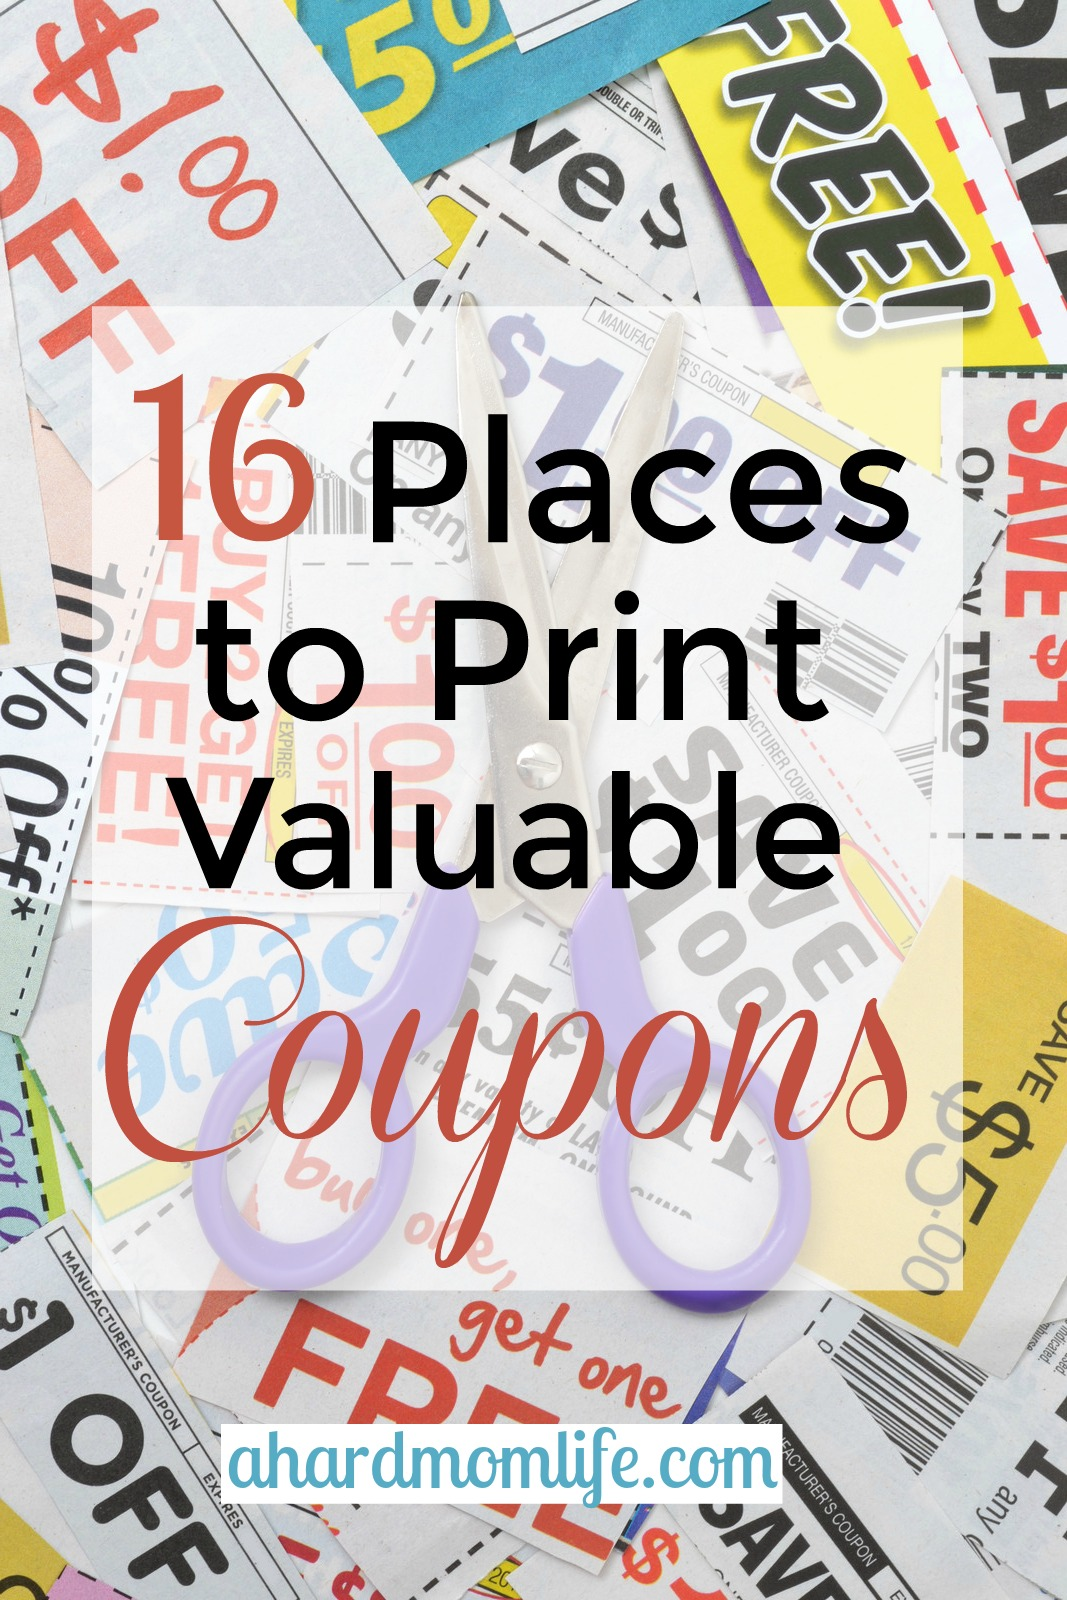 Are you a cost-conscious parent? Yeah, me too. Check out this list of 16 places to print valuable coupons for both groceries and retail purchases.